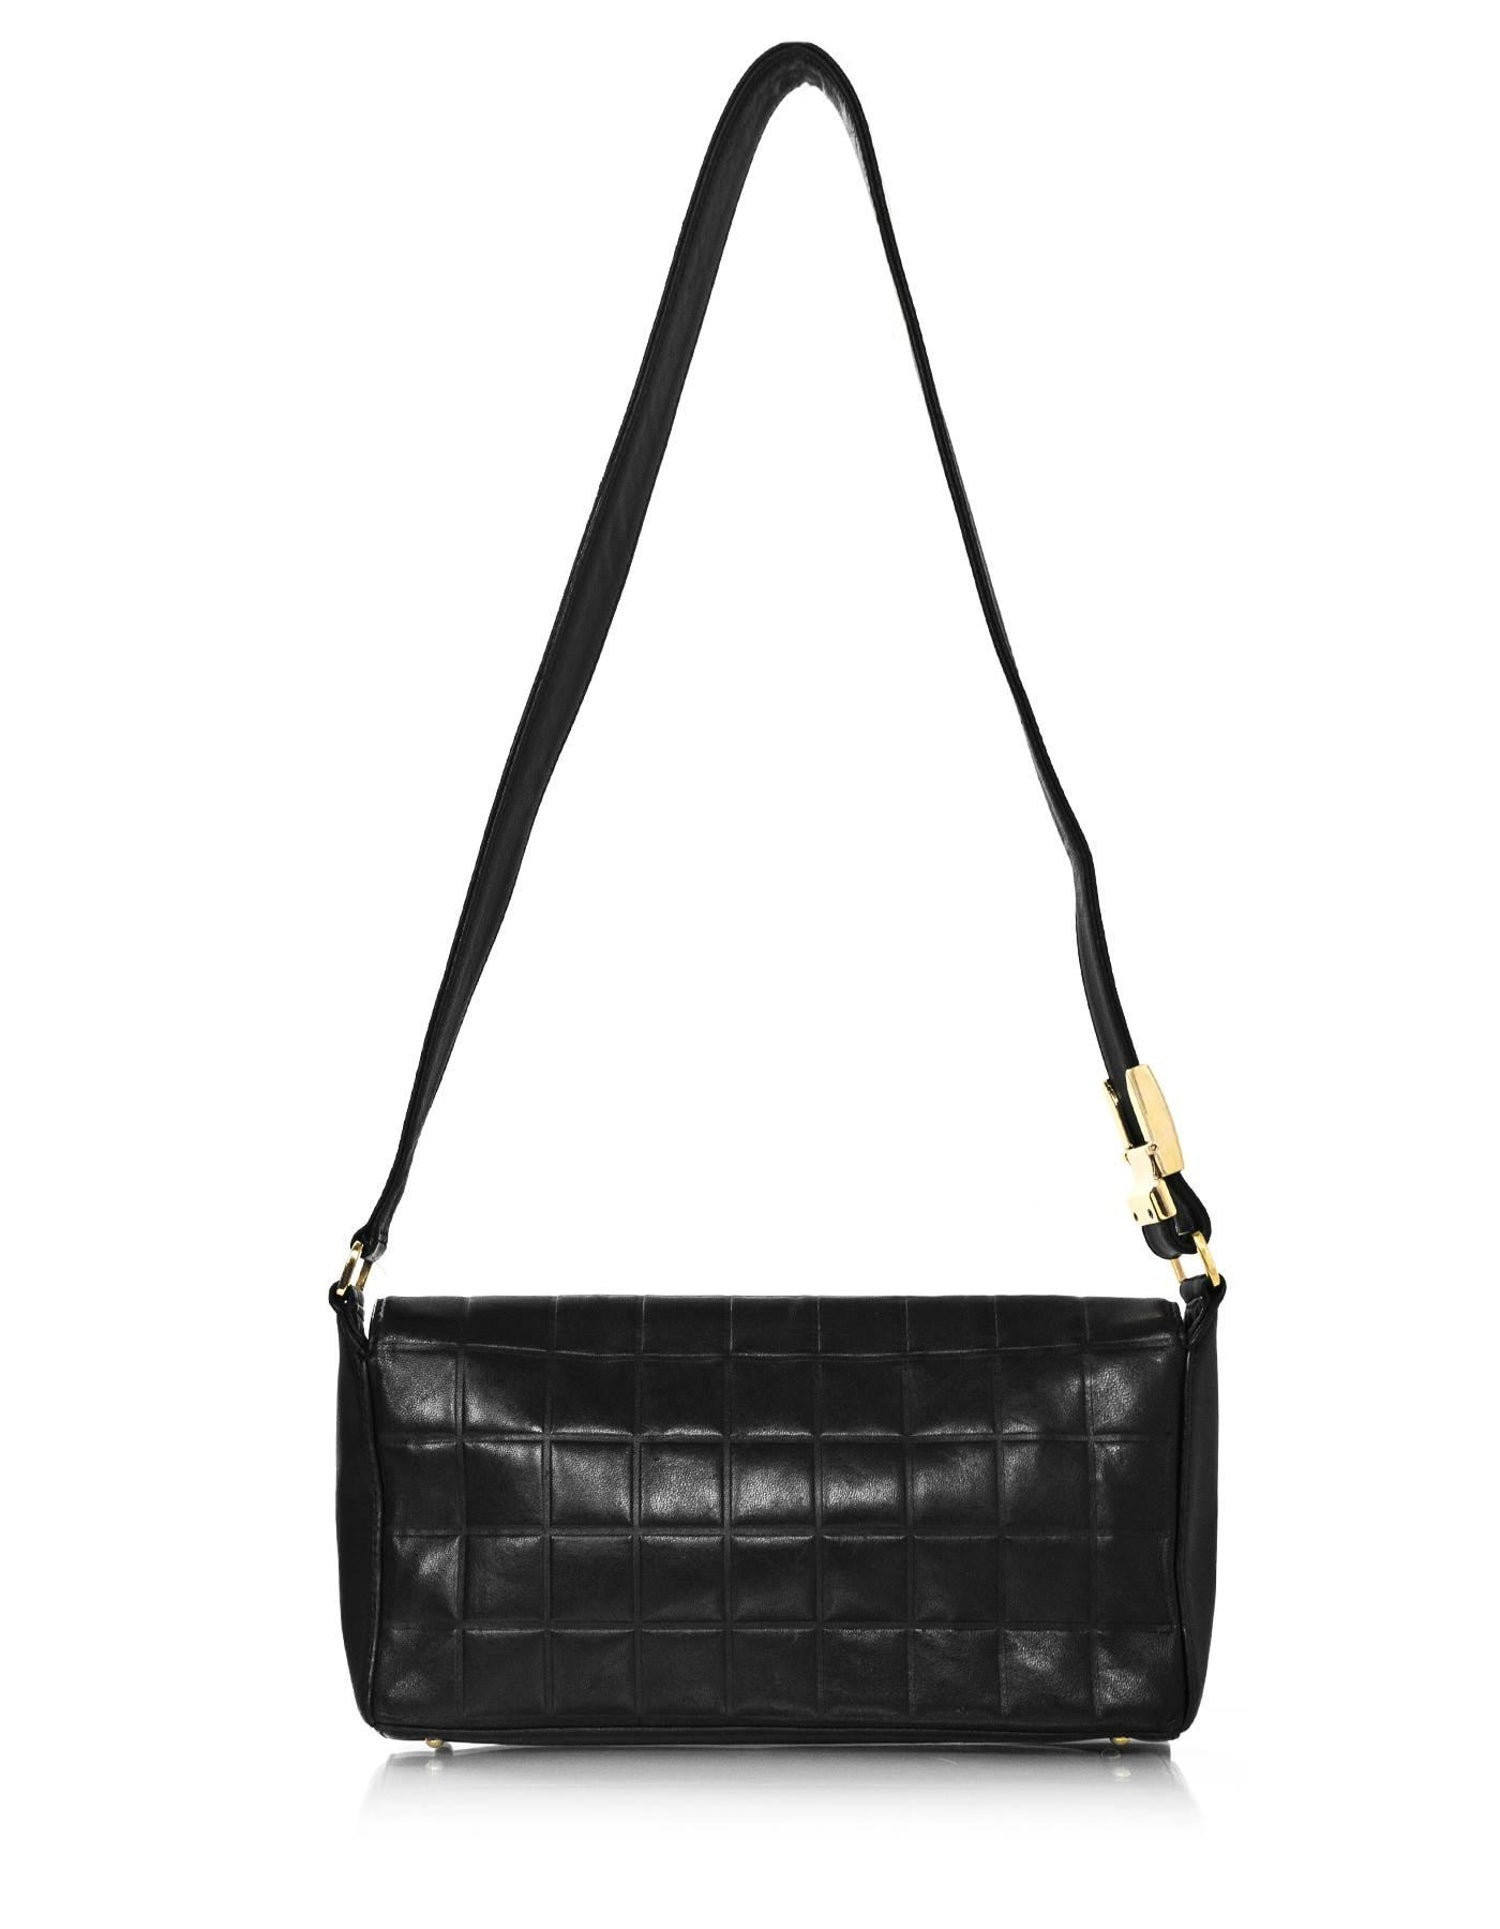 765743bc5bdf Chanel Black Lambskin Chocolate Bar CC Pochette Bag For Sale at 1stdibs